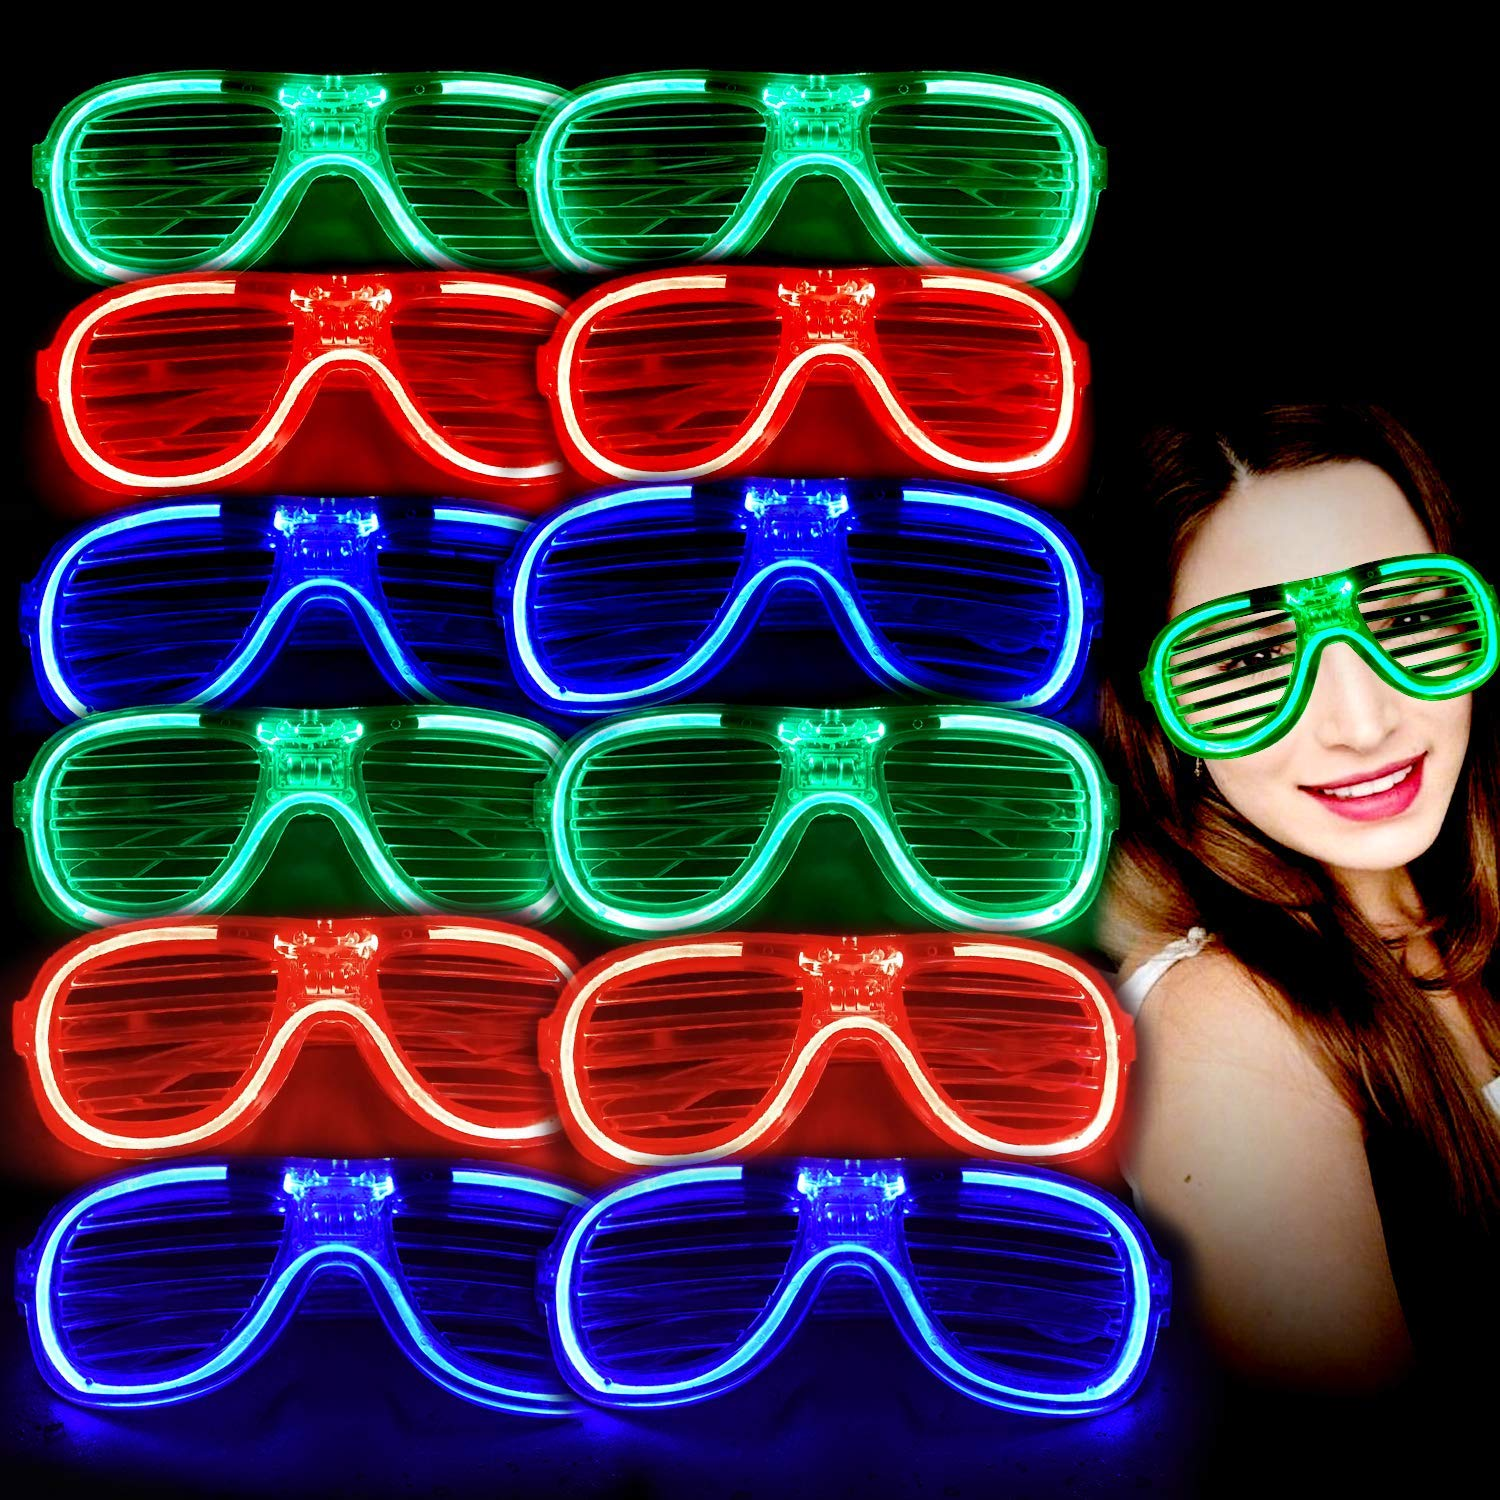 M.best Light Up Glow Glasses, 12 Pack Glow in The Dark LED Shutter Shades Sunglasses Party Favors for Kids or Adults ( B Style)